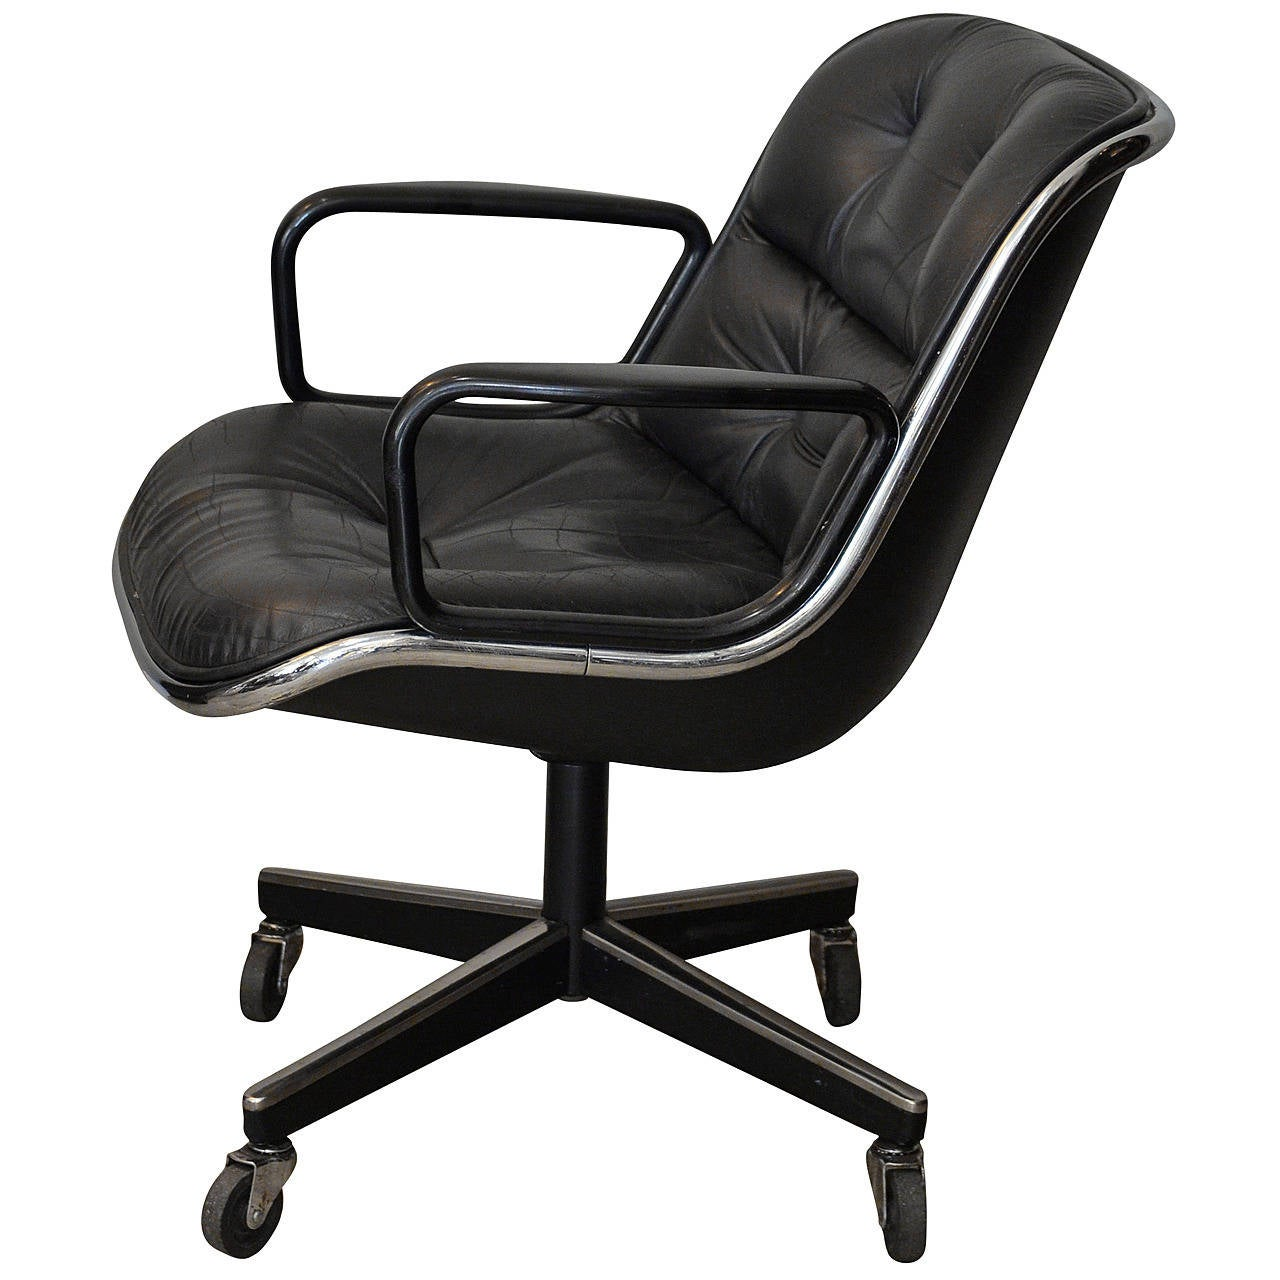 Midcentury Executive Desk Leather Chair by Charles Pollock for